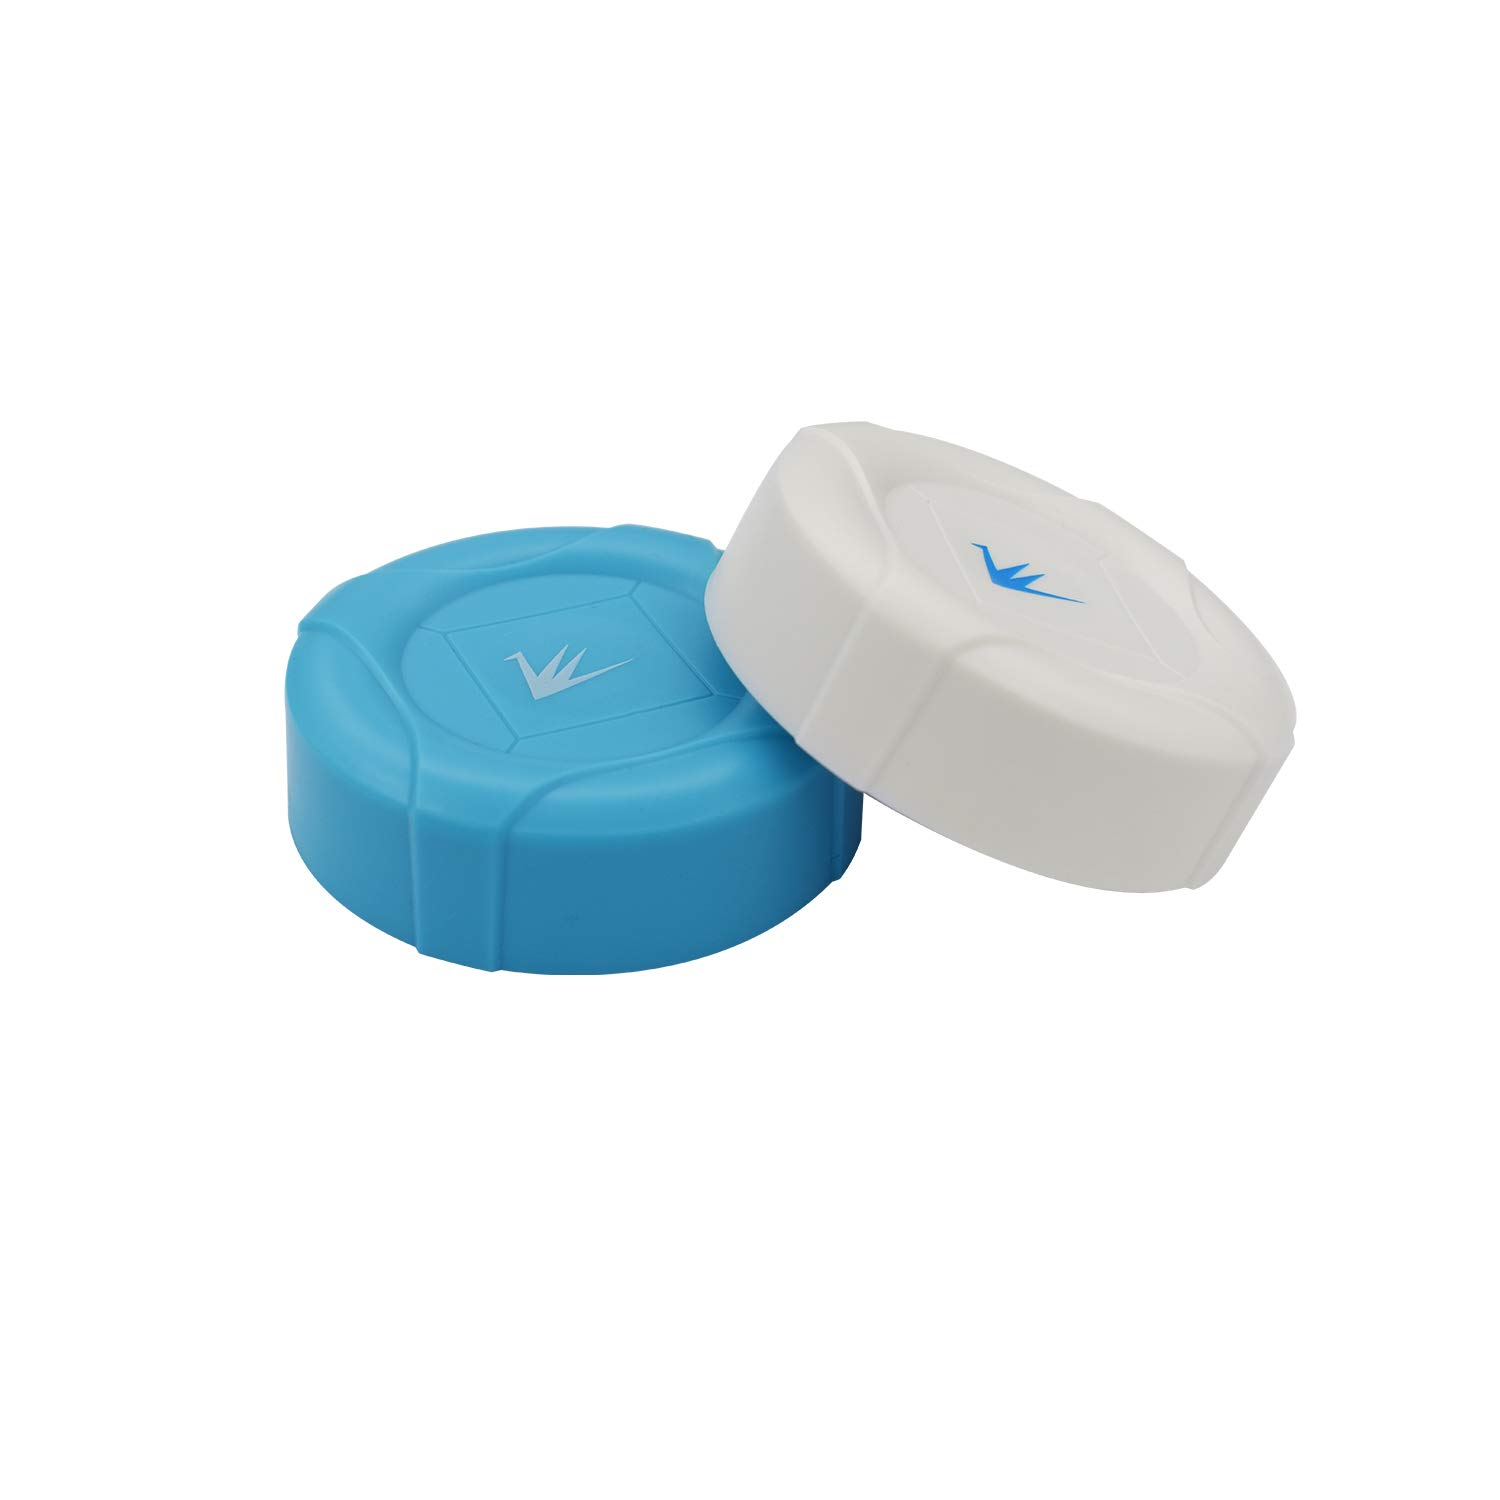 Feasycom Long Range 500m programmable & Battery Powered BLE Bluetooth 5.0 ibeacon eddystone Beacon, Android Beacon Technology for Android and iOS